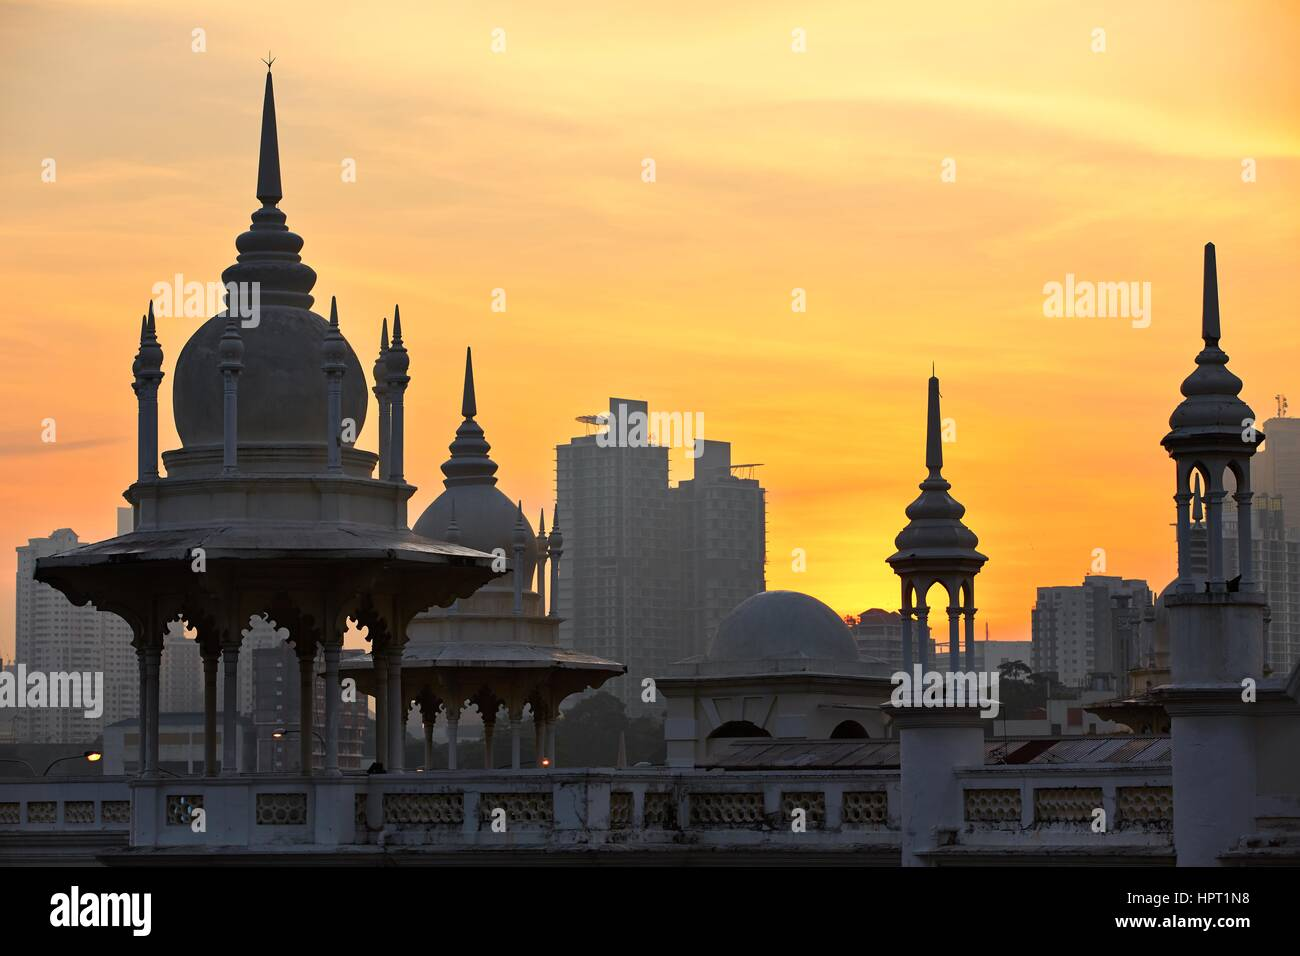 Towers of the historical building railway station in Kuala Lumpur at sunrise. Stock Photo